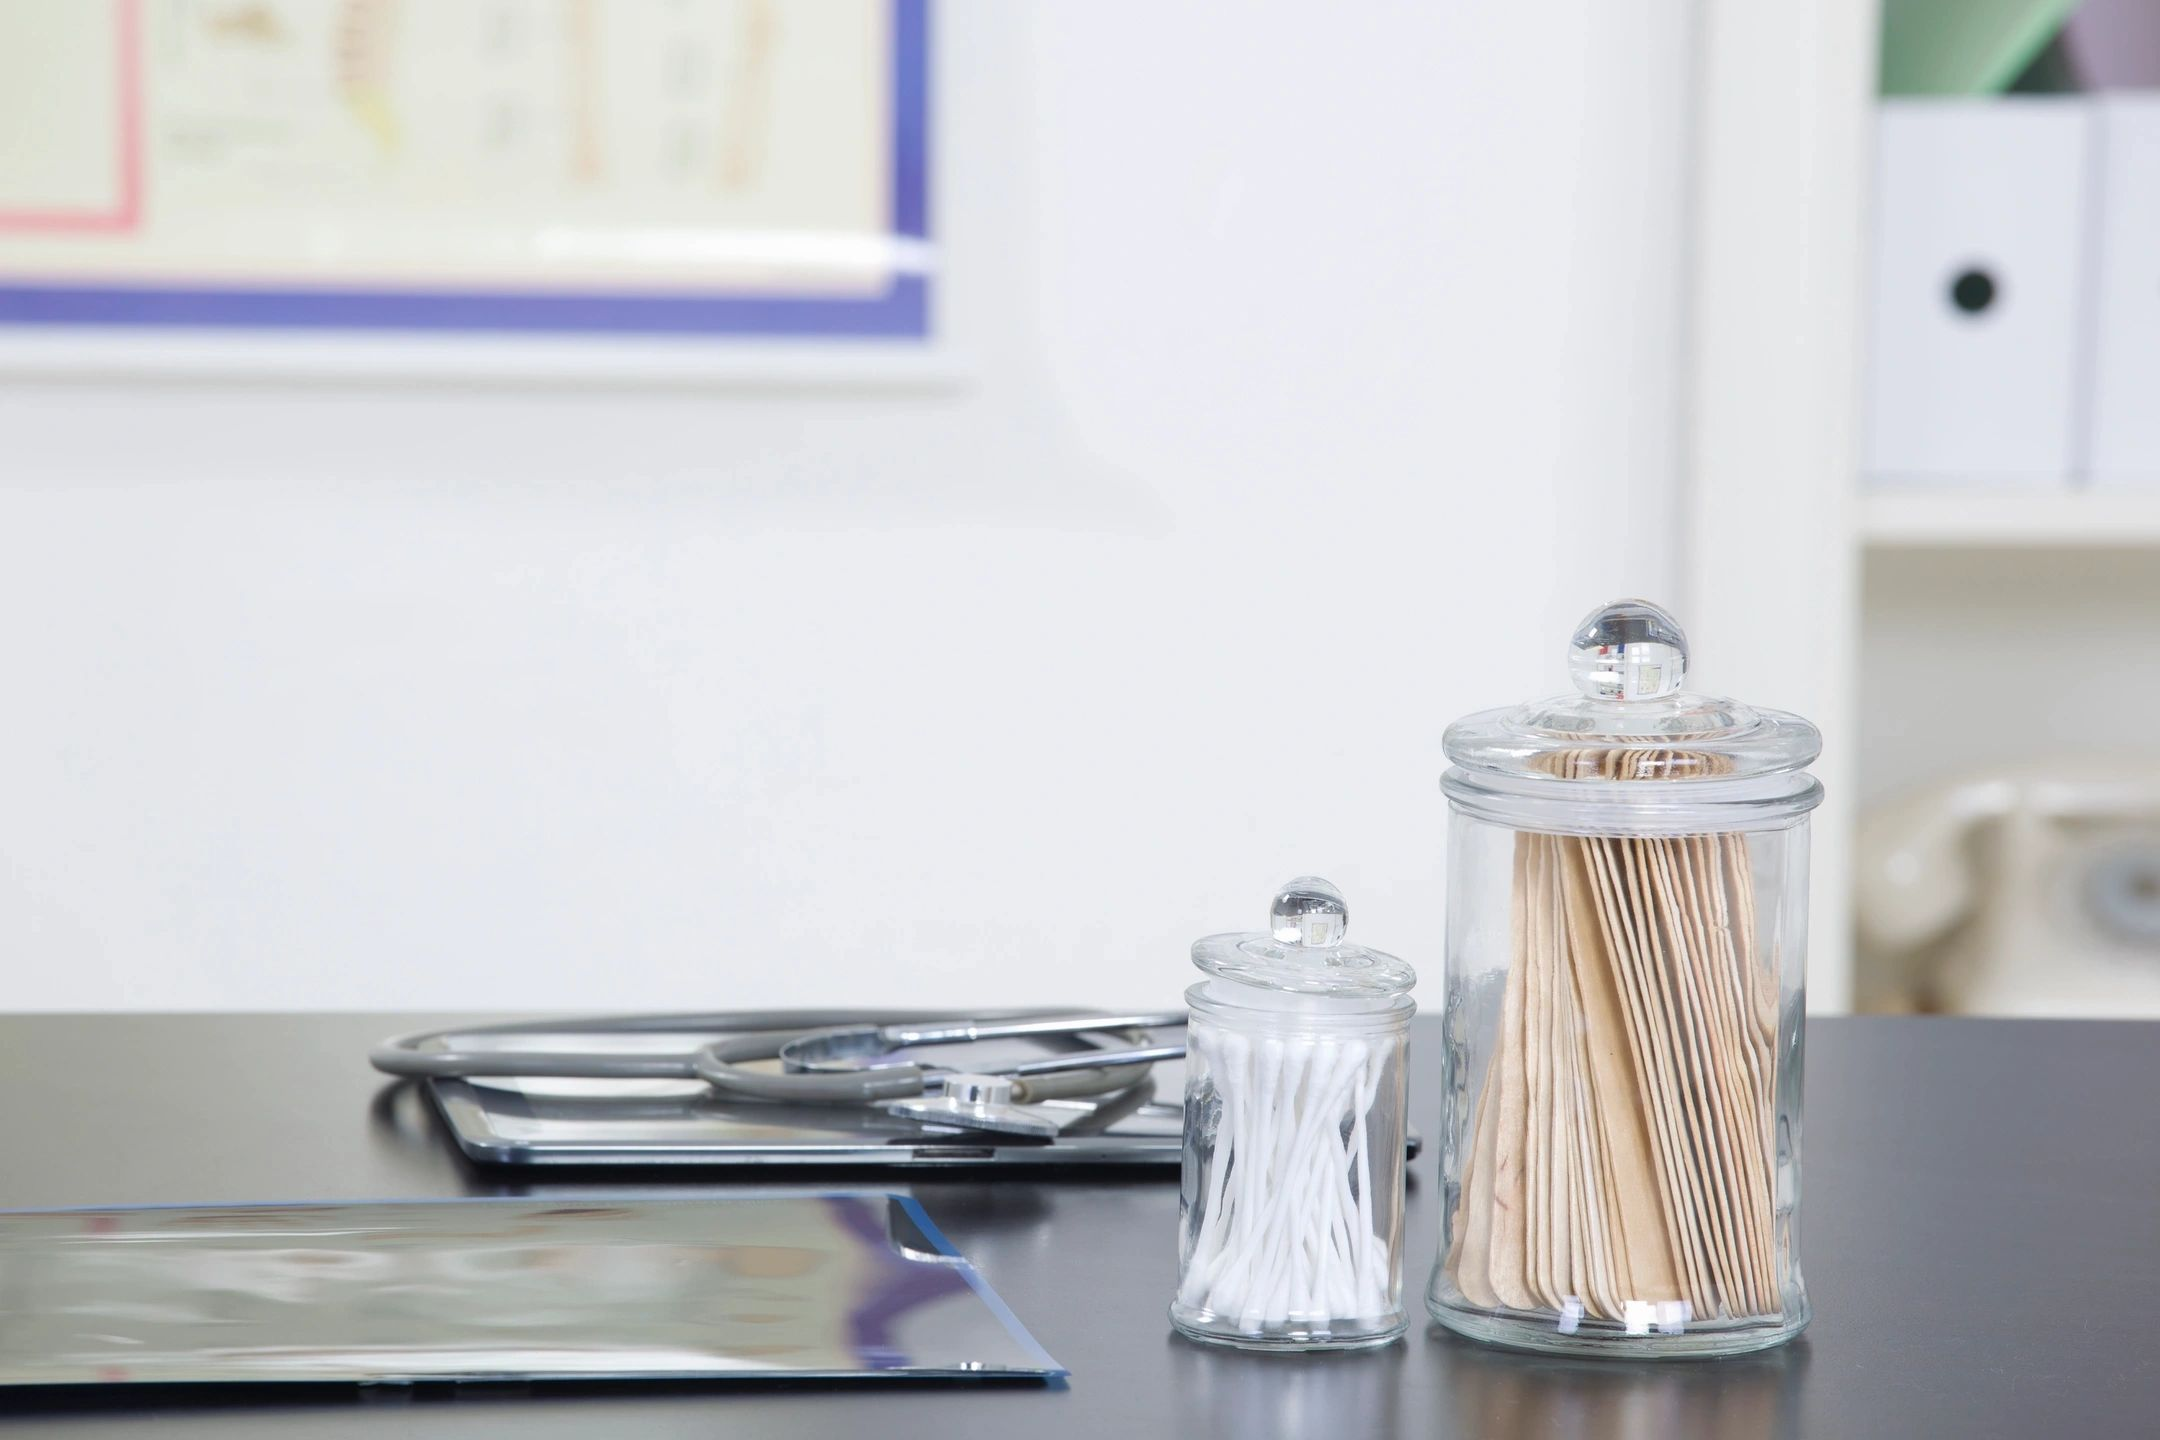 A doctor's desk with swabs and tongue depressors.